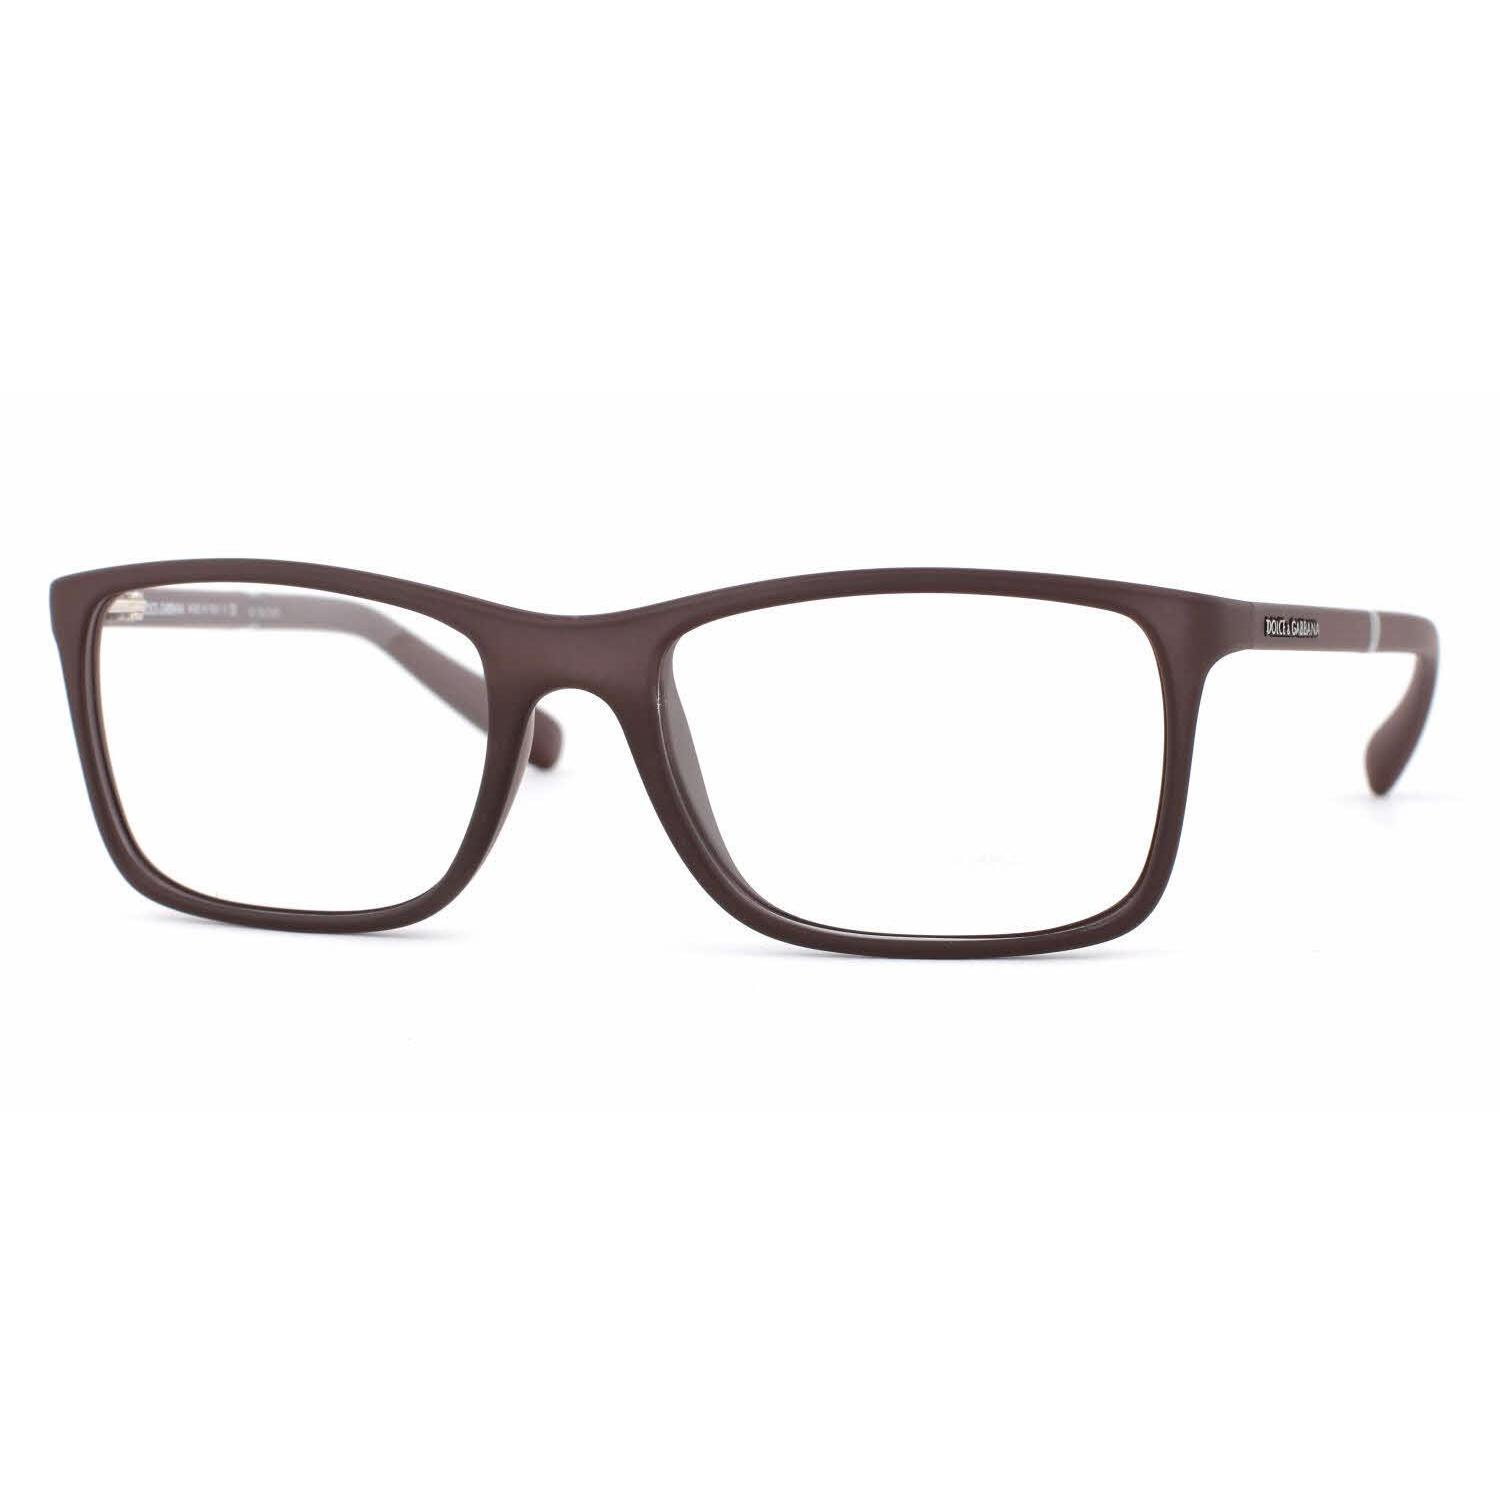 cc2f5e1d505f Shop Dolce   Gabbana Mens DG5004 LIFESTYLE 2652 Brown Plastic Rectangle  Eyeglasses - Free Shipping Today - Overstock.com - 13613630